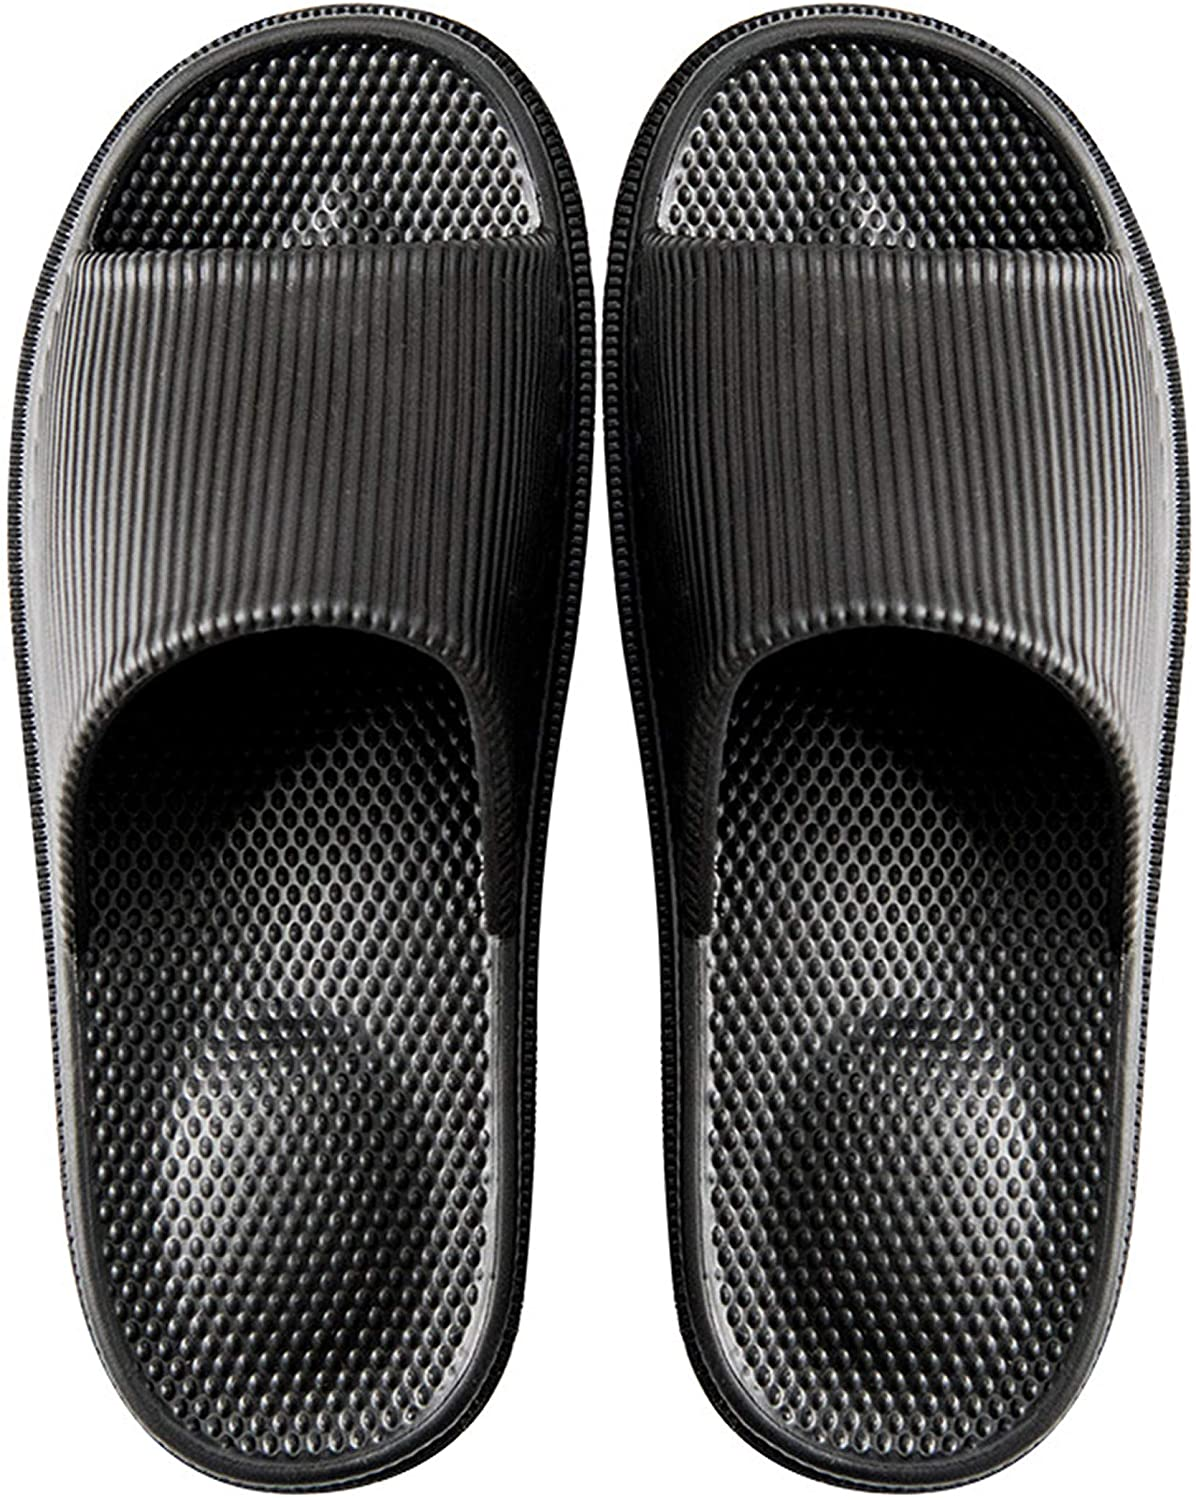 Crazy Lady Woman's Man's House Indoor & Outdoor Slippers Anti-Slip Massage Shower Spa Bath Pool Gym Slides Flip Flop Open Toe Comfortable Soft Sandals Casual Shoes Light Weight EVA Platform